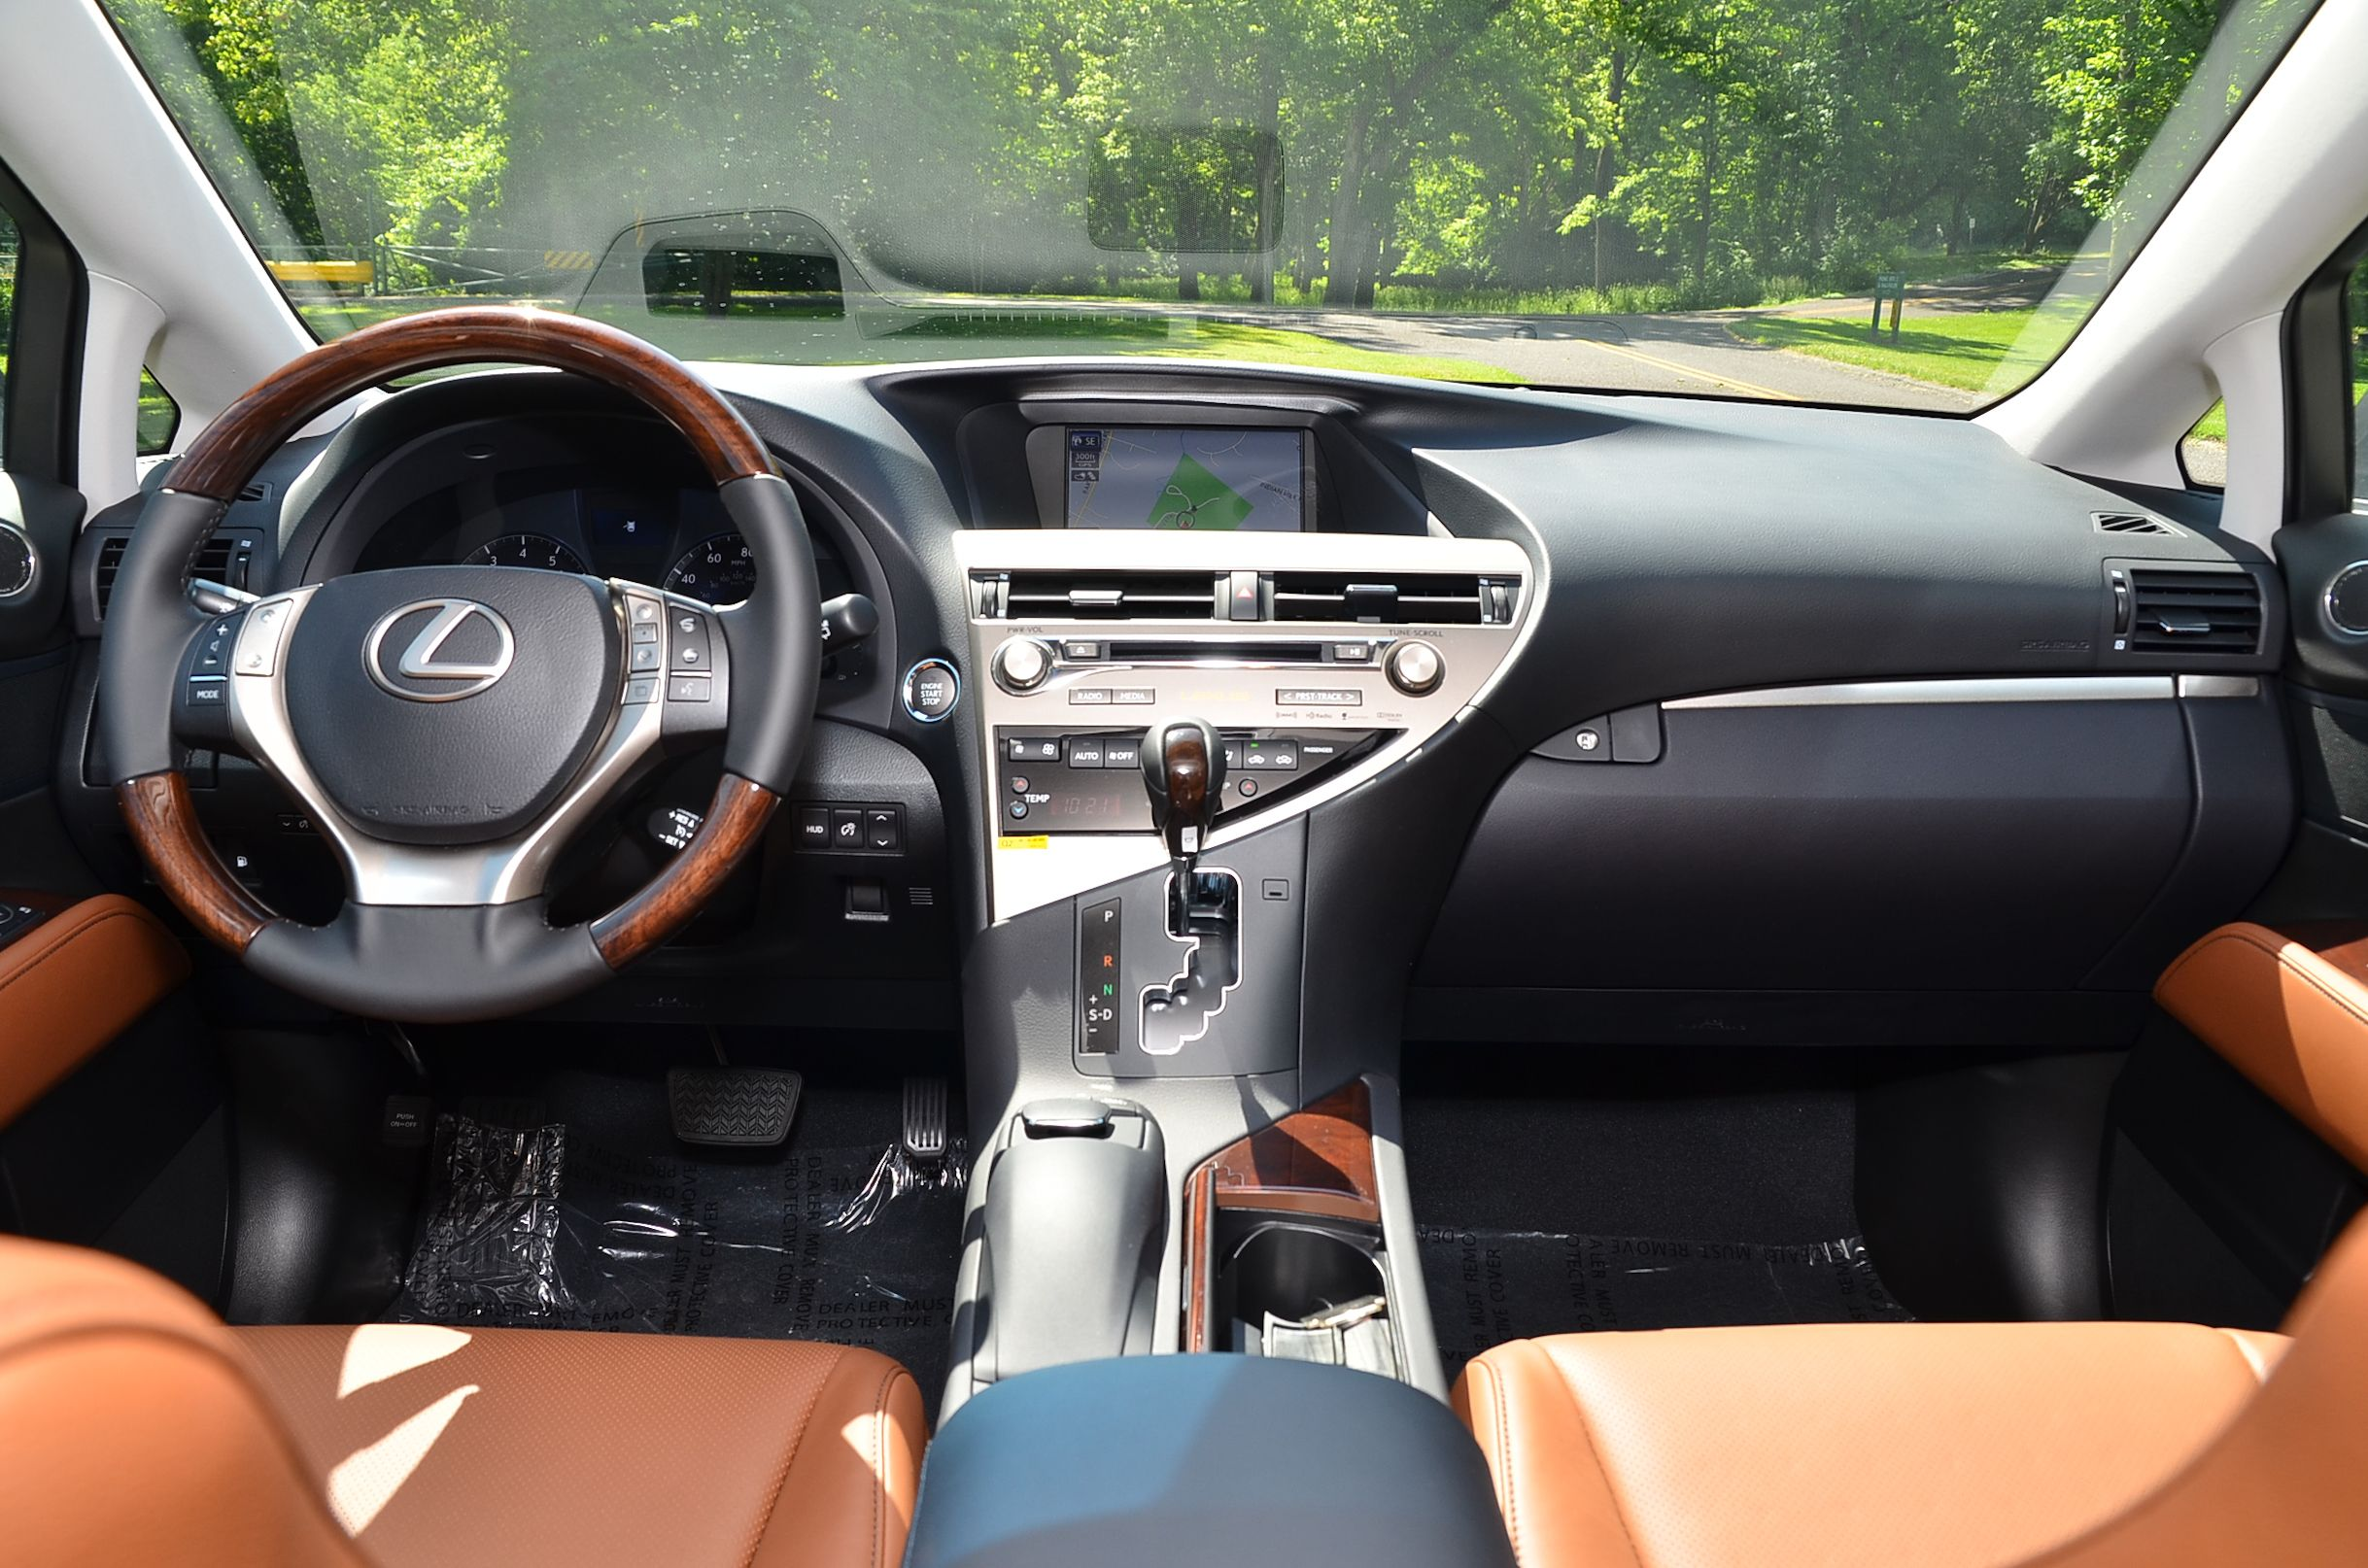 rx com suv of lexus auto and iii specs pictures database information